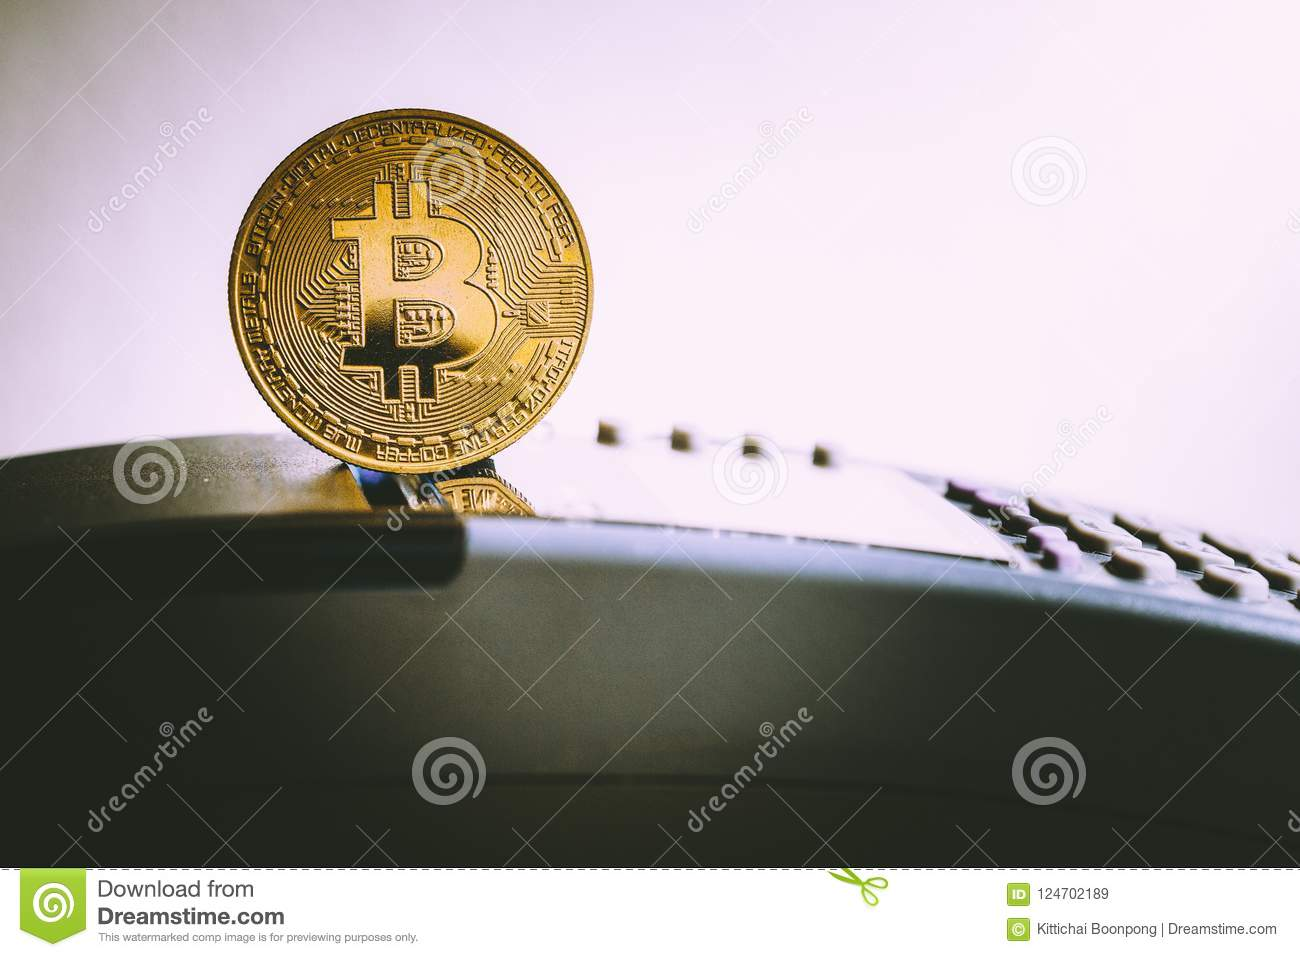 can you oay credit card bills with cryptocurrency